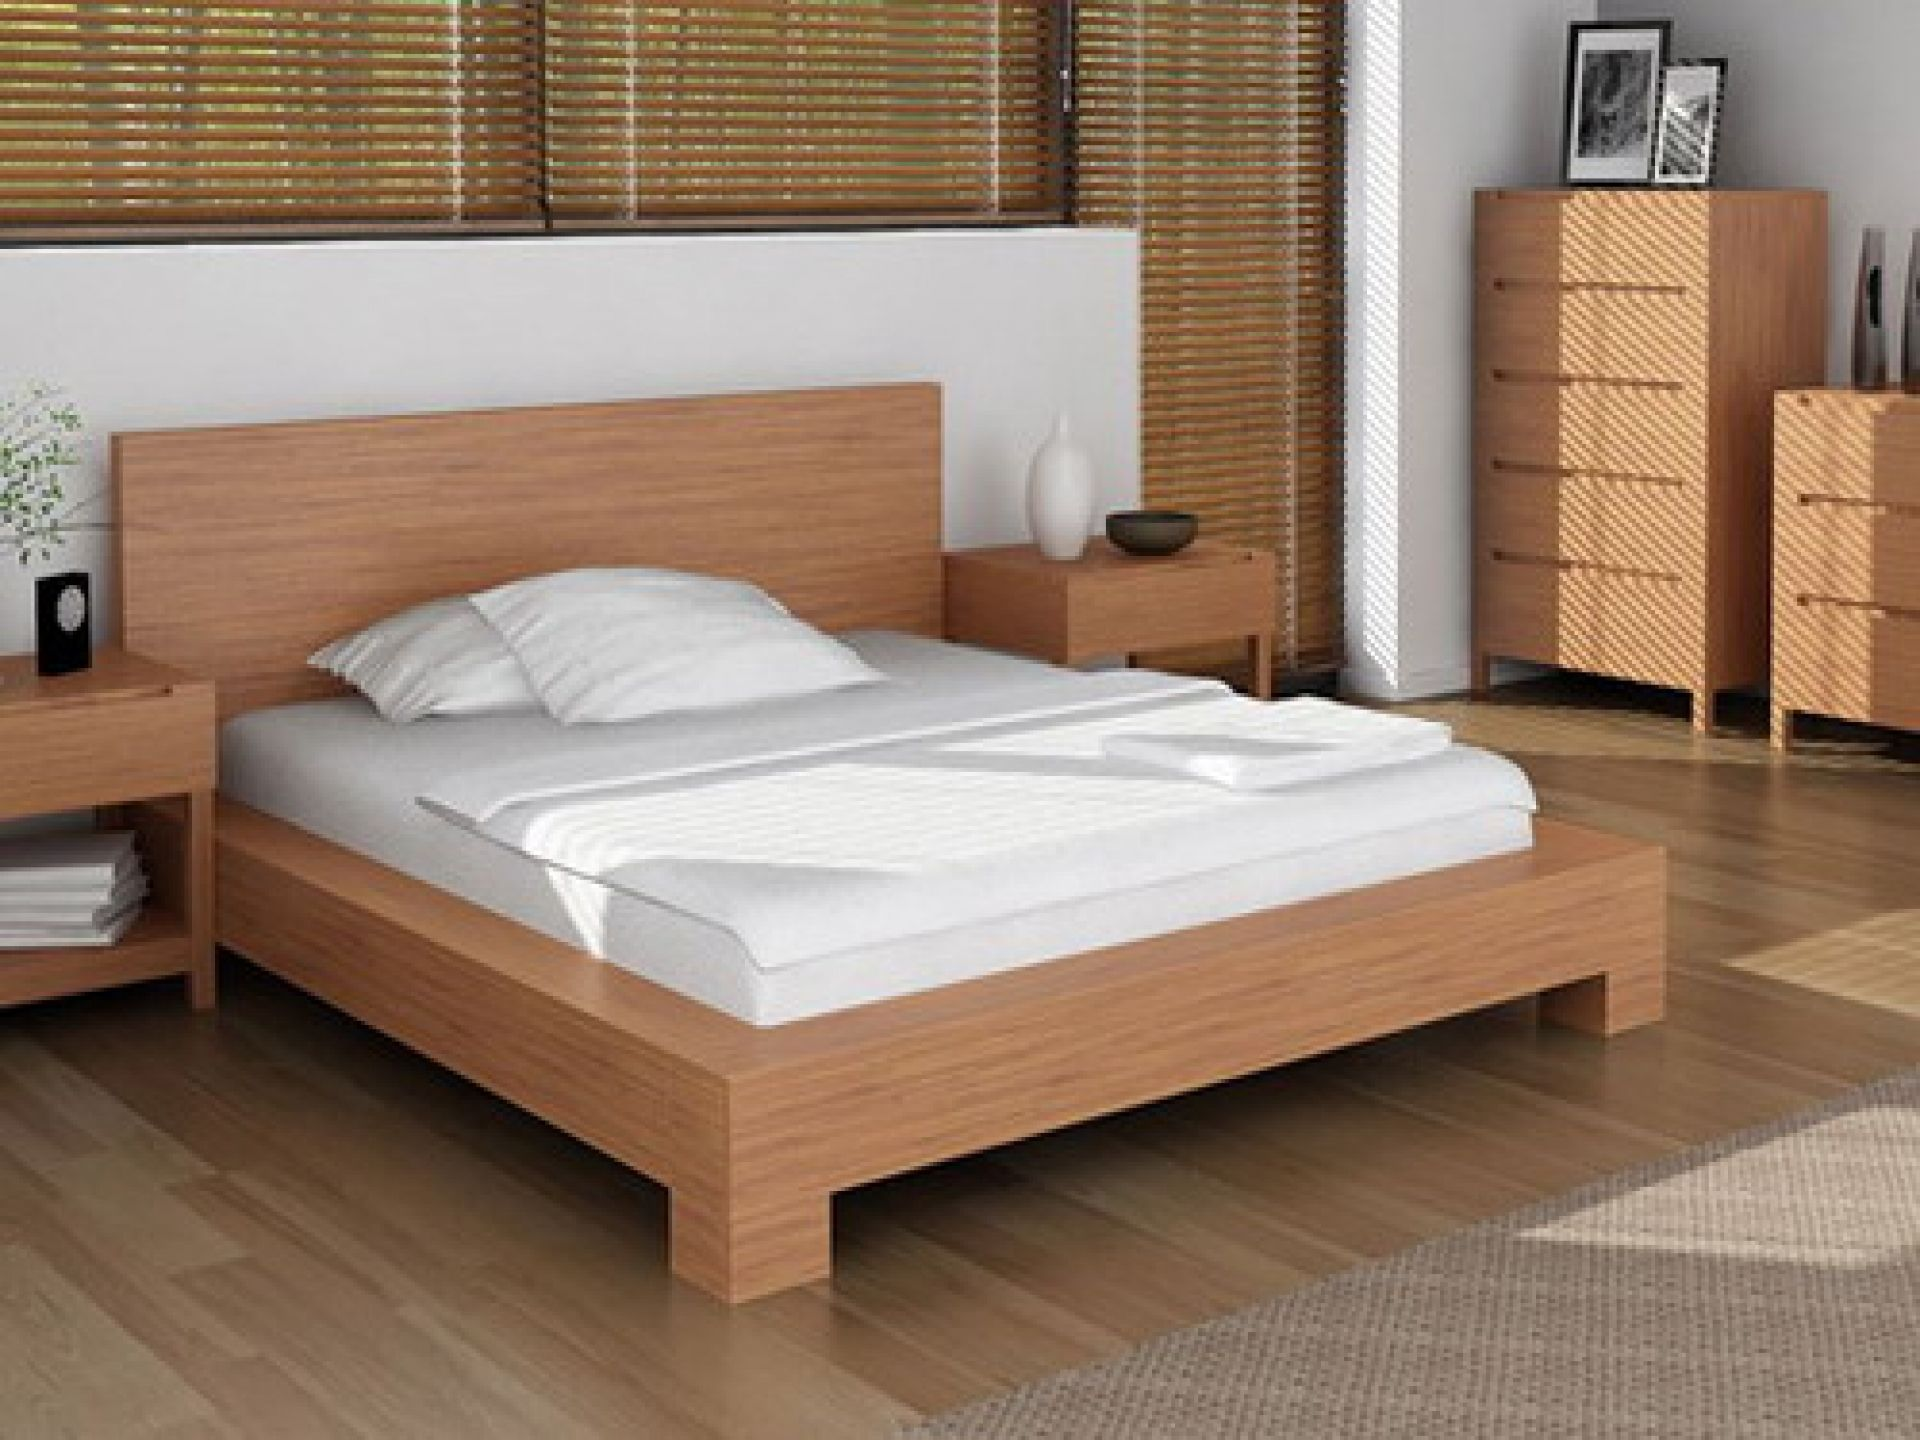 Canvas of Simple Wood Bed Frame Ideas Bedroom Design